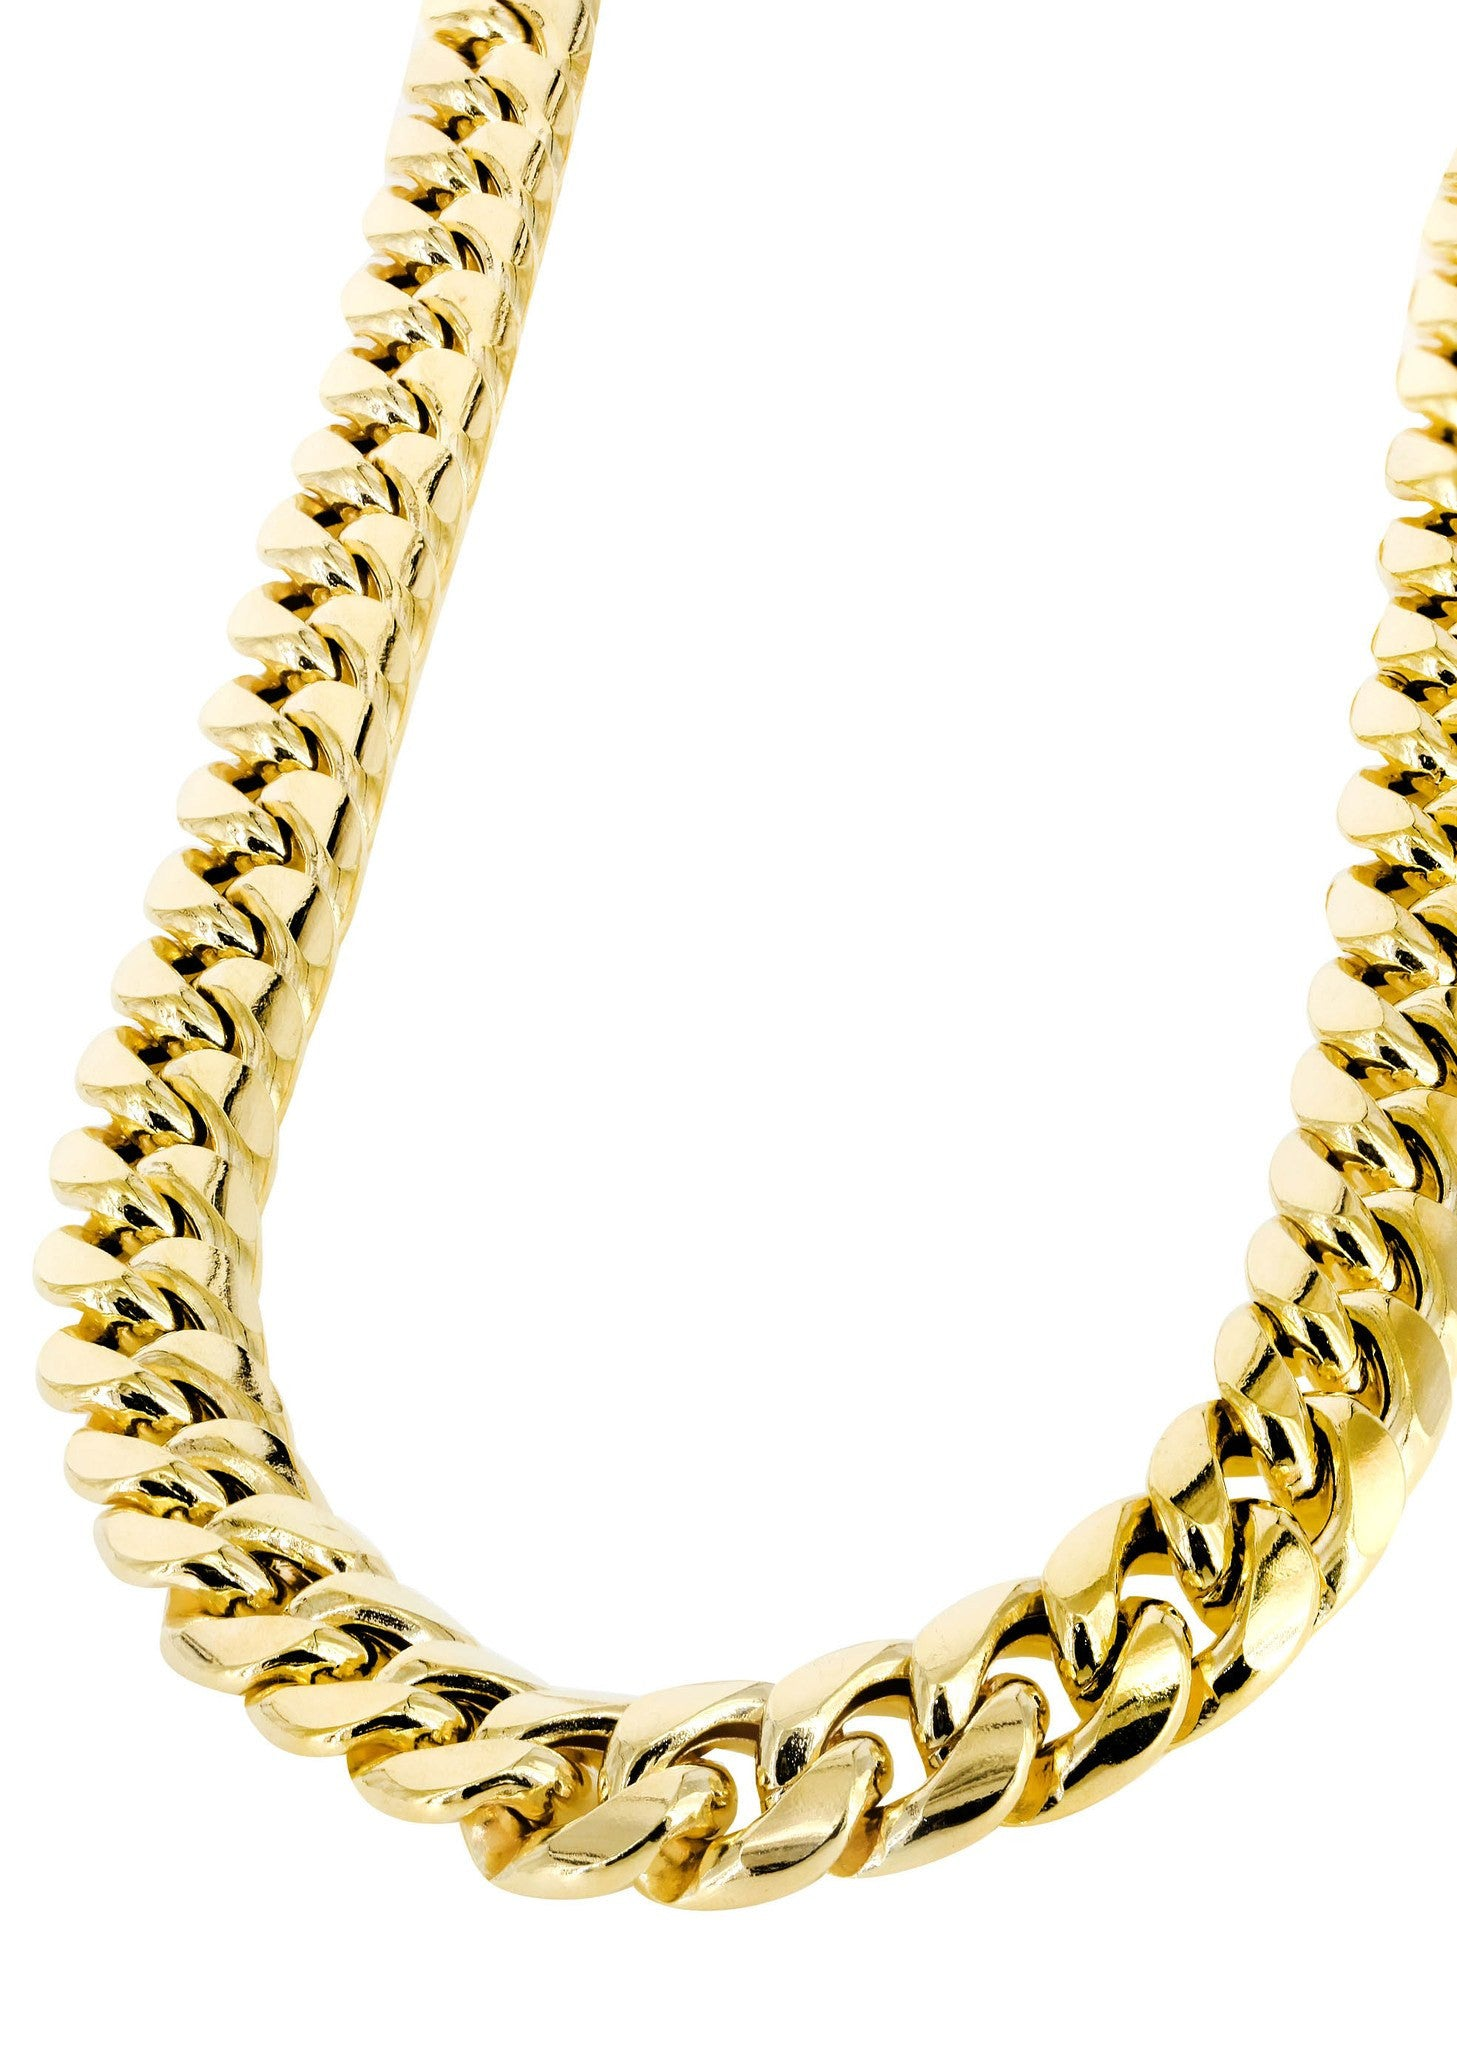 Hollow Mens Miami Cuban Link Chain 10K Yellow Gold – FrostNYC